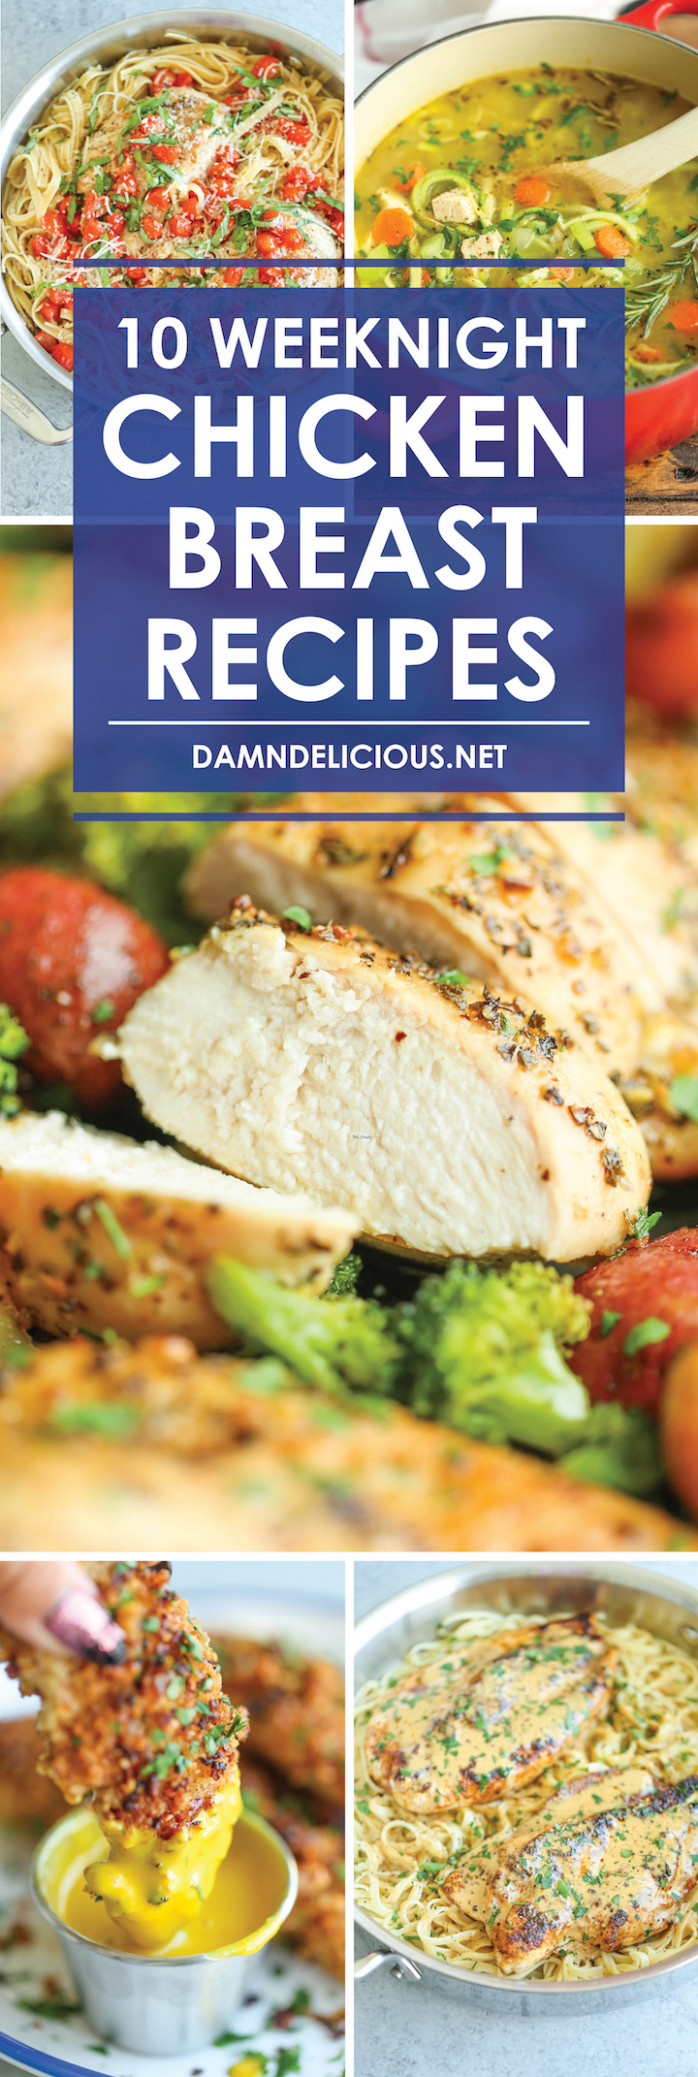 12 Weeknight Chicken Breast Recipes - Damn Delicious - Breast Recipes Chicken Quick